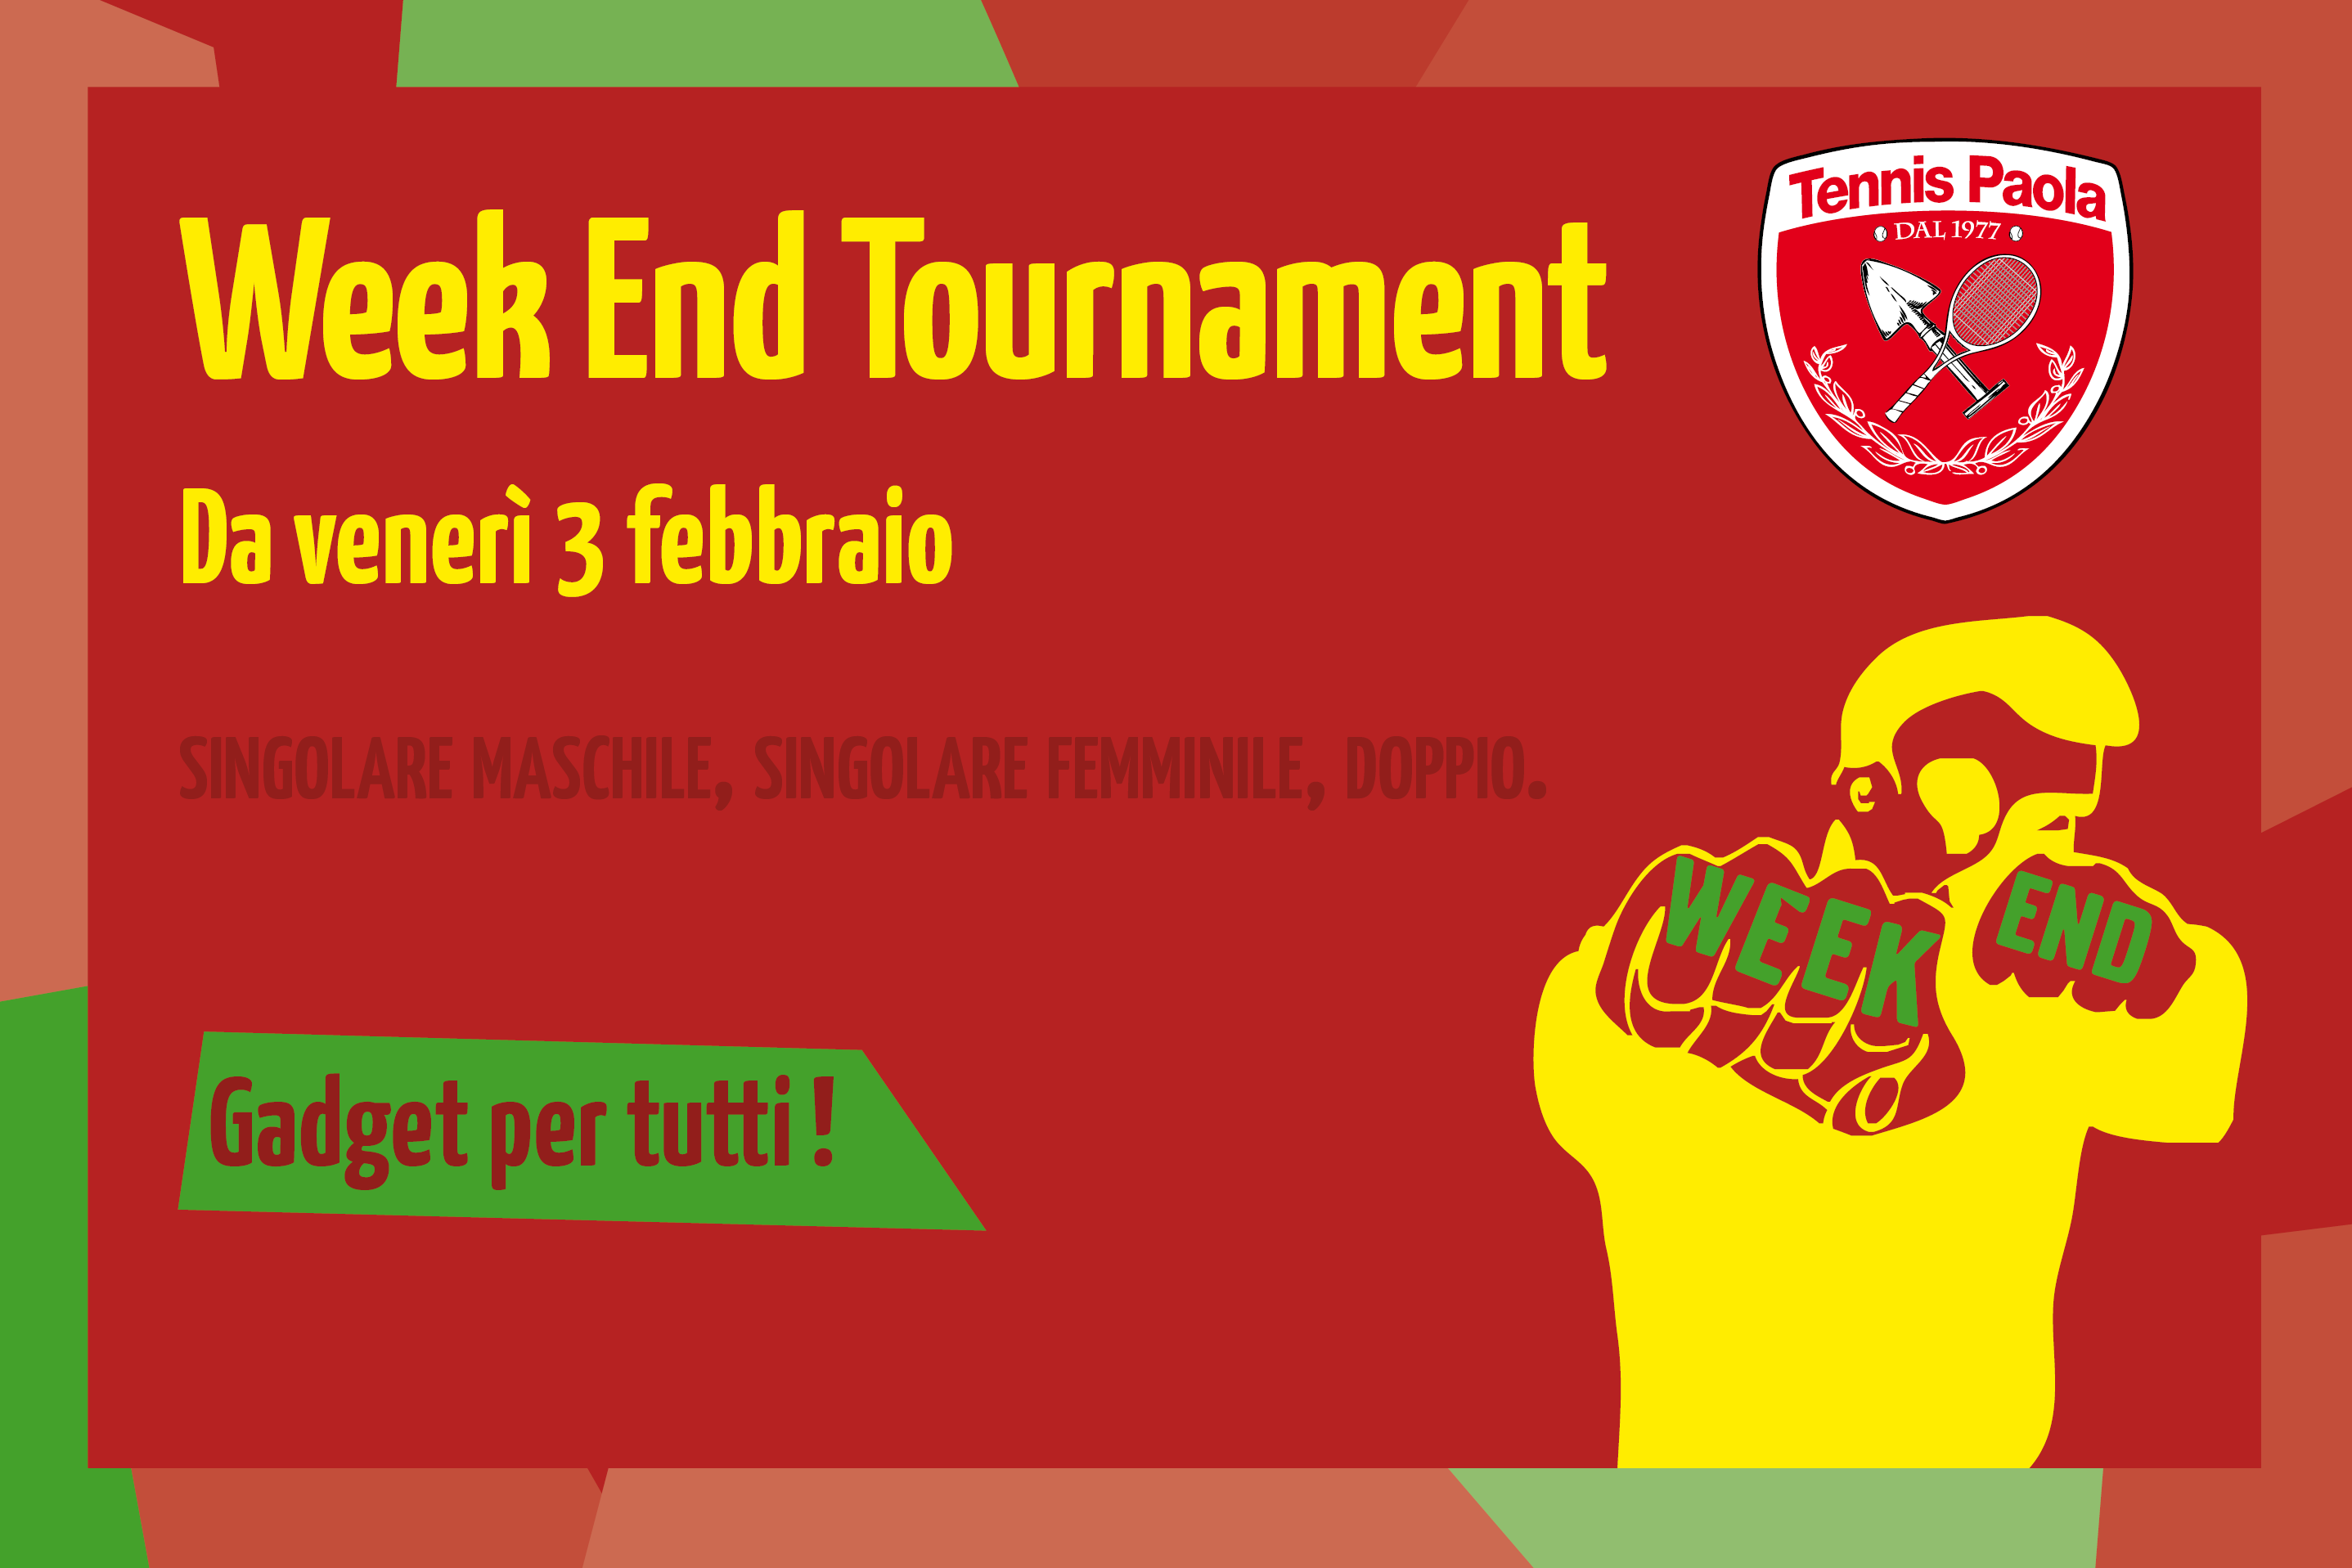 Week End Tournament 2018